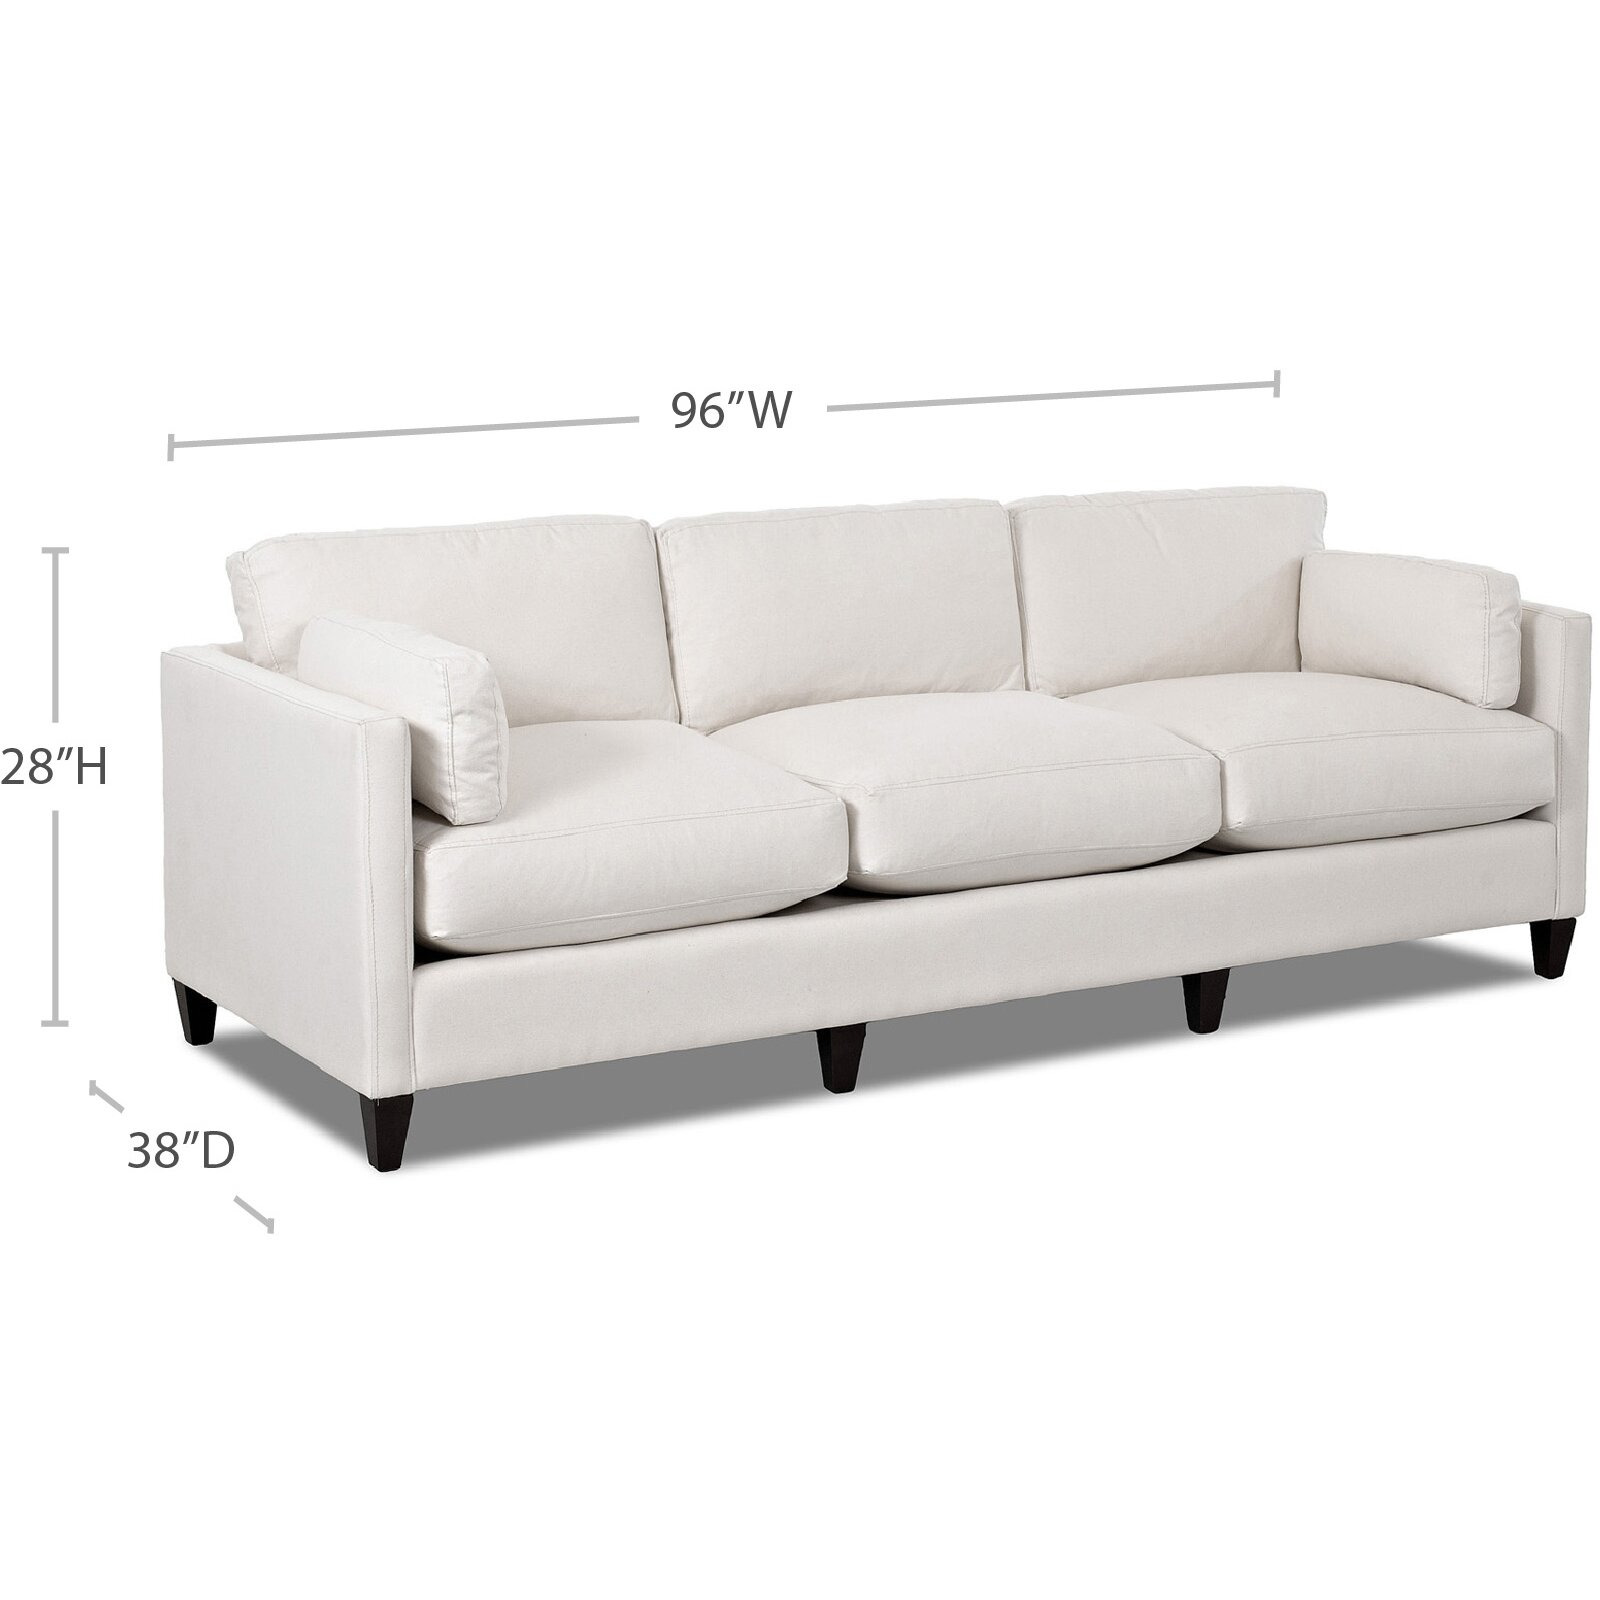 Wayfair Custom Upholstery Caroline Sofa Reviews Wayfair